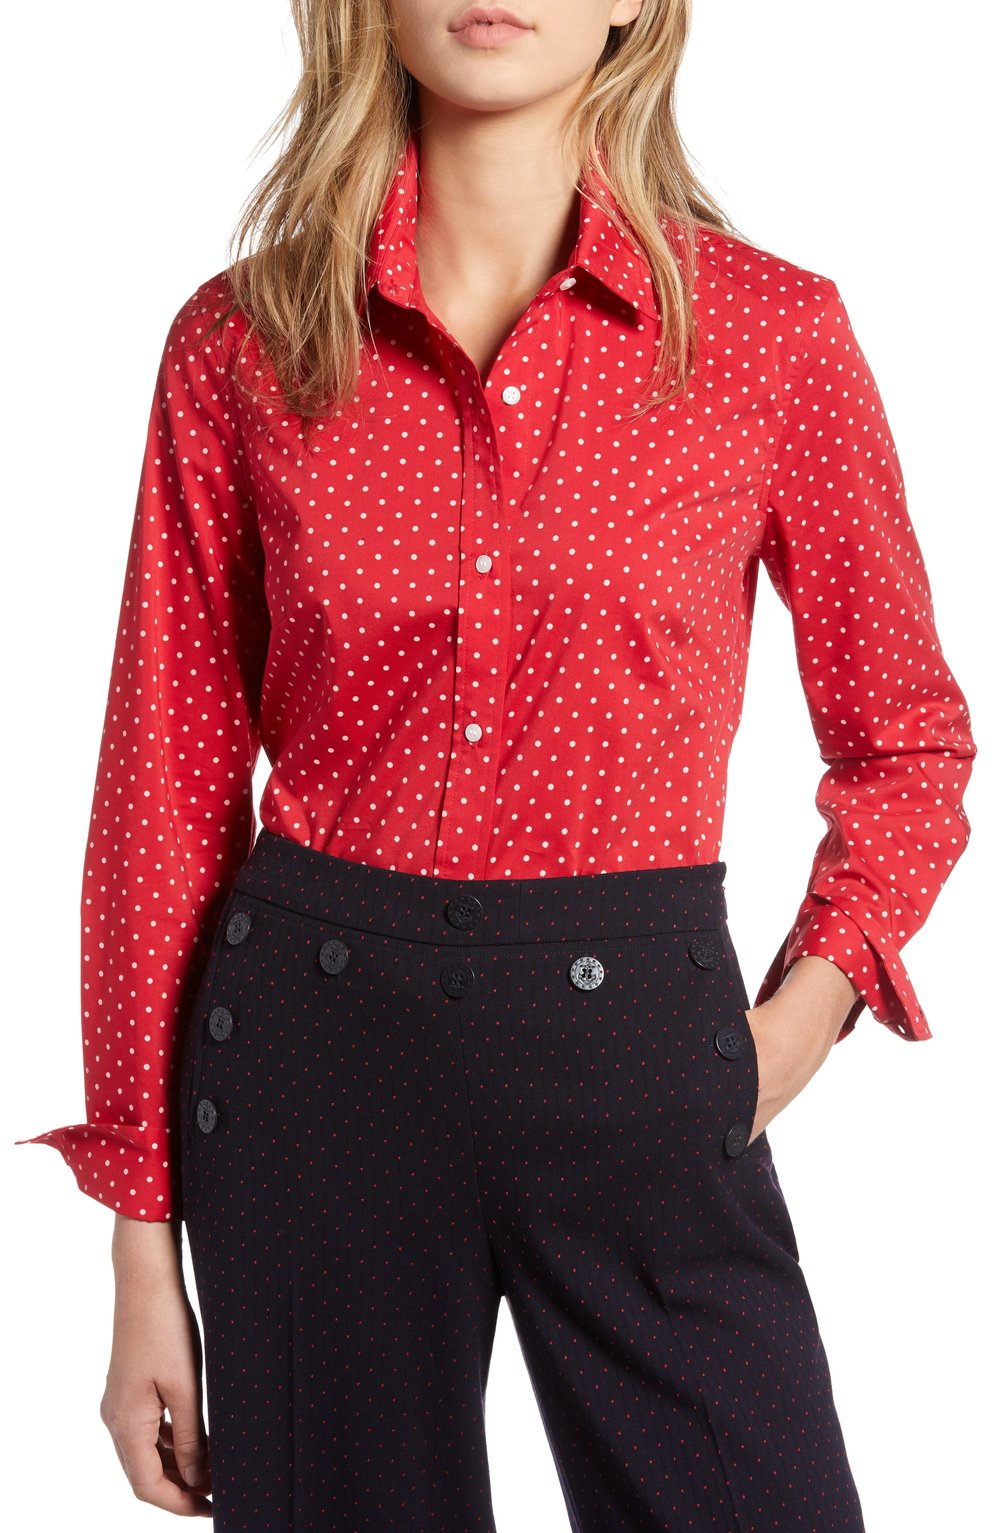 red polka dot shirt.jpg